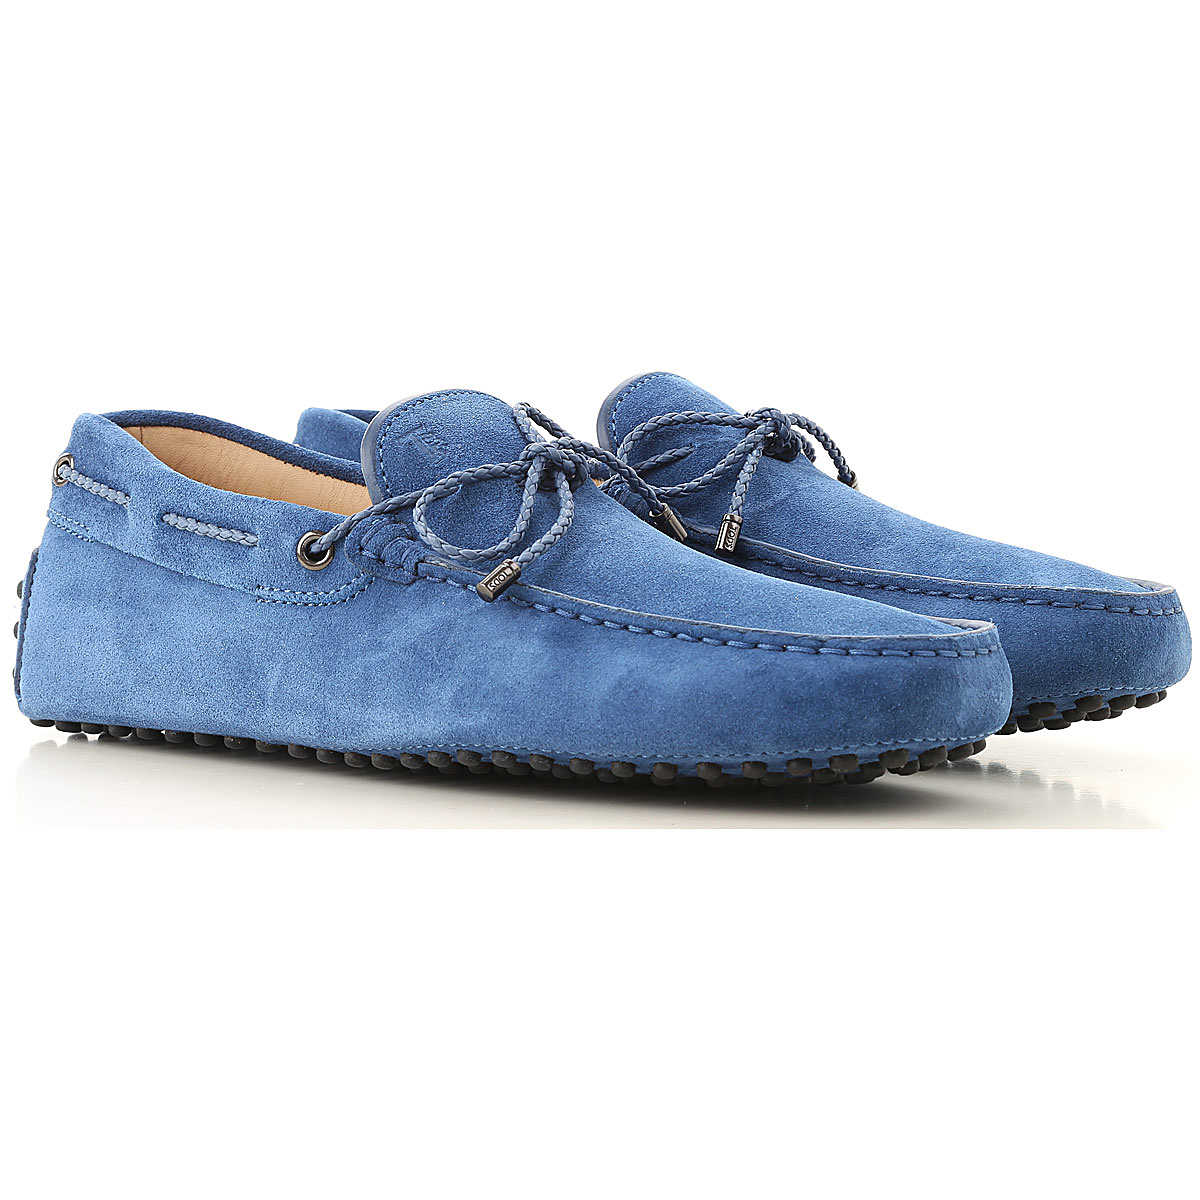 Tods Loafers for Men On Sale Bright Bluette - GOOFASH